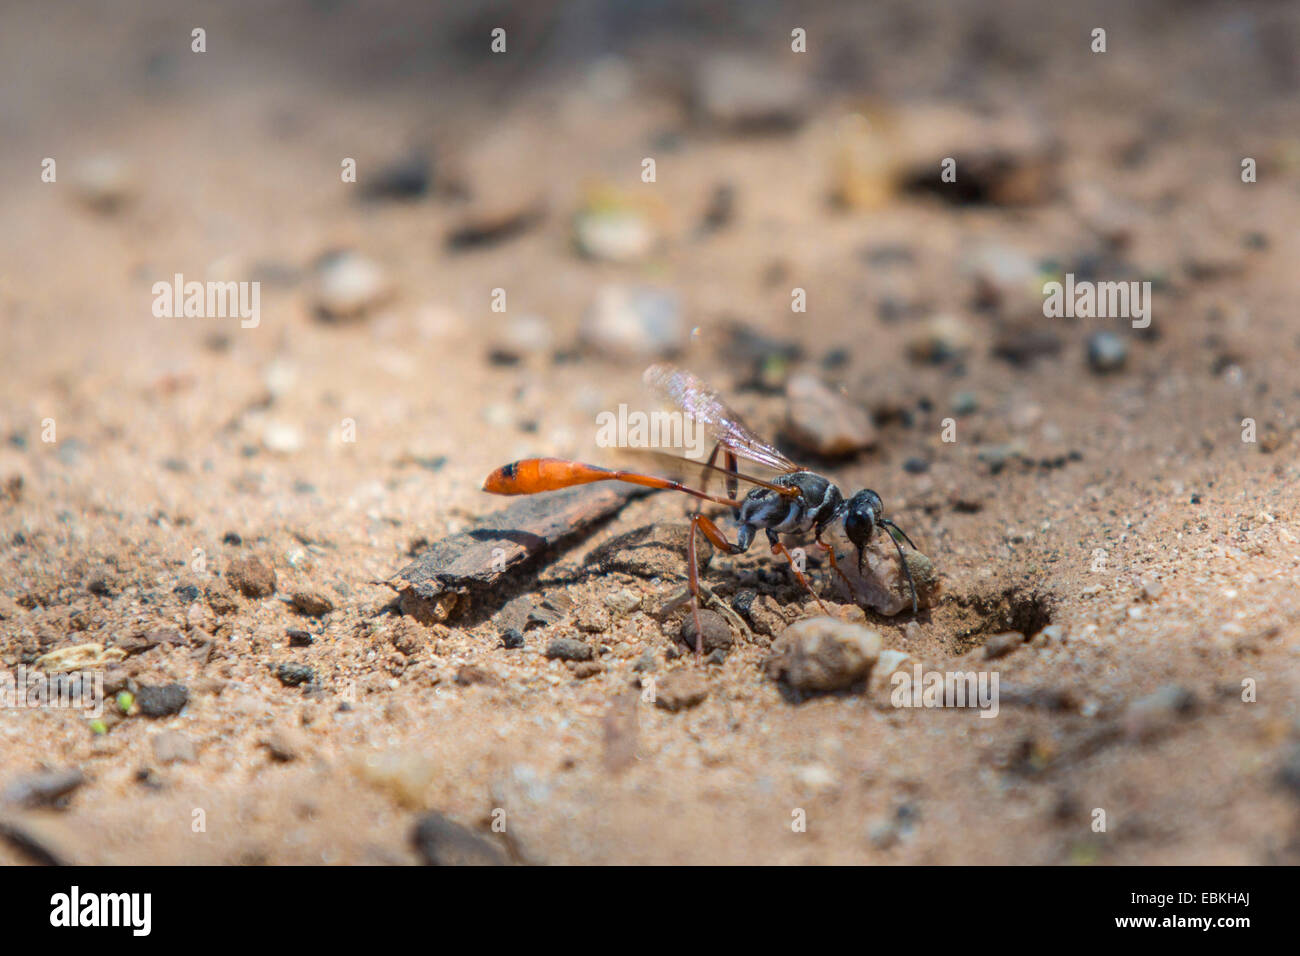 digger wasps, hunting wasps (Sphecidae, Sphegidae), closing a prey hiding-place with a stone, USA, Arizona, Phoenix - Stock Image